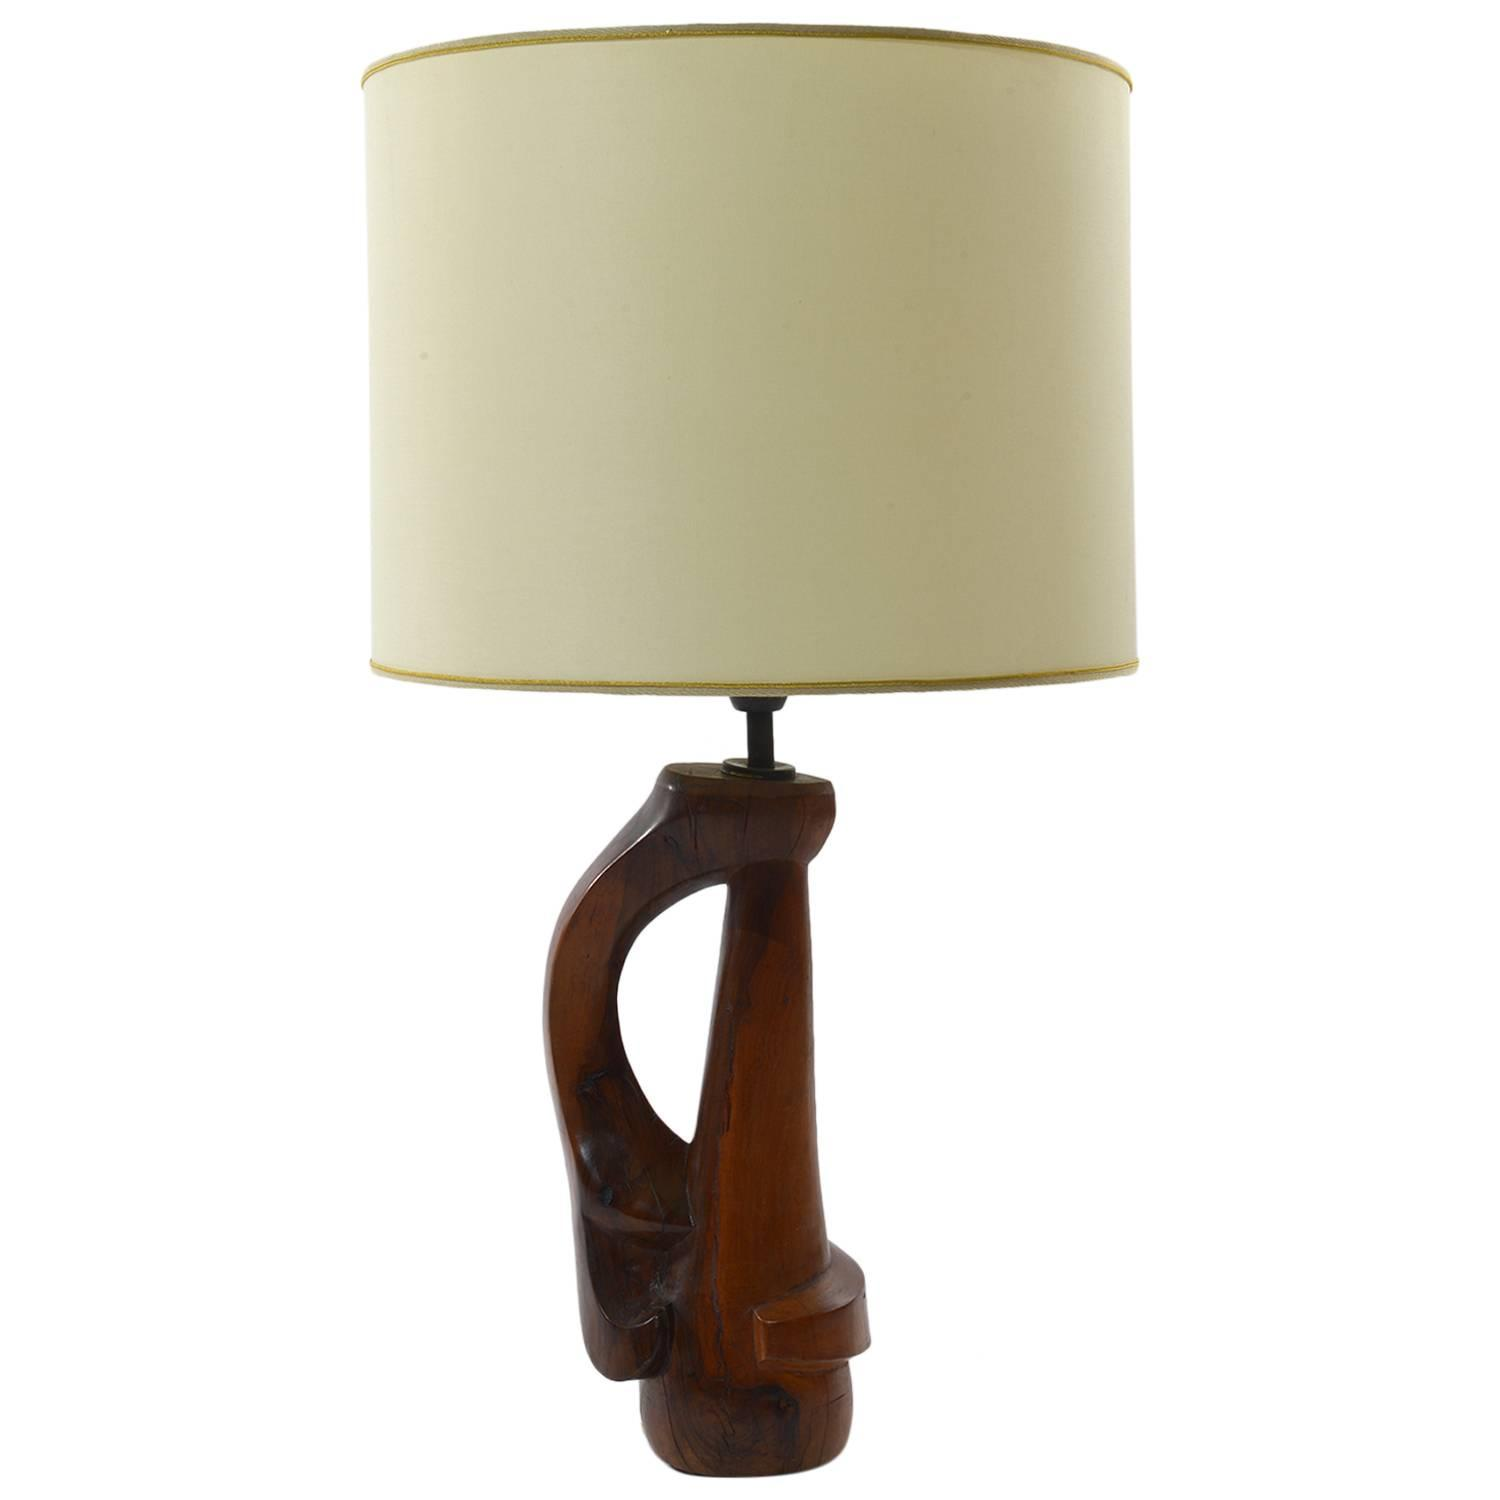 french 1950s solid sculptured wood table lamps for sale at 1stdibs. Black Bedroom Furniture Sets. Home Design Ideas